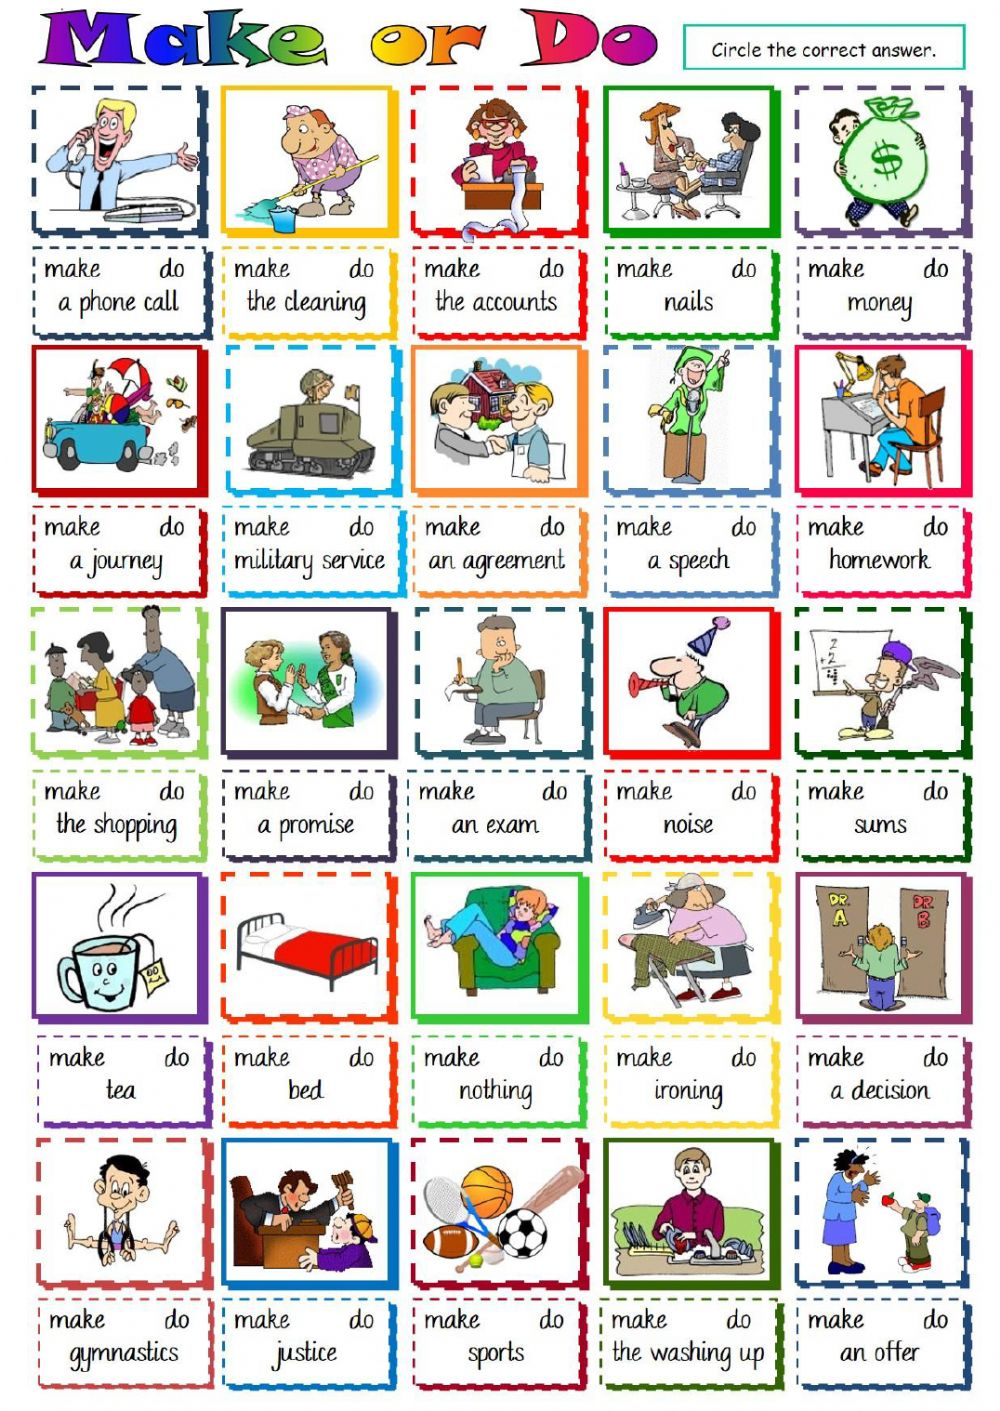 Make or do - collocations - Interactive worksheet